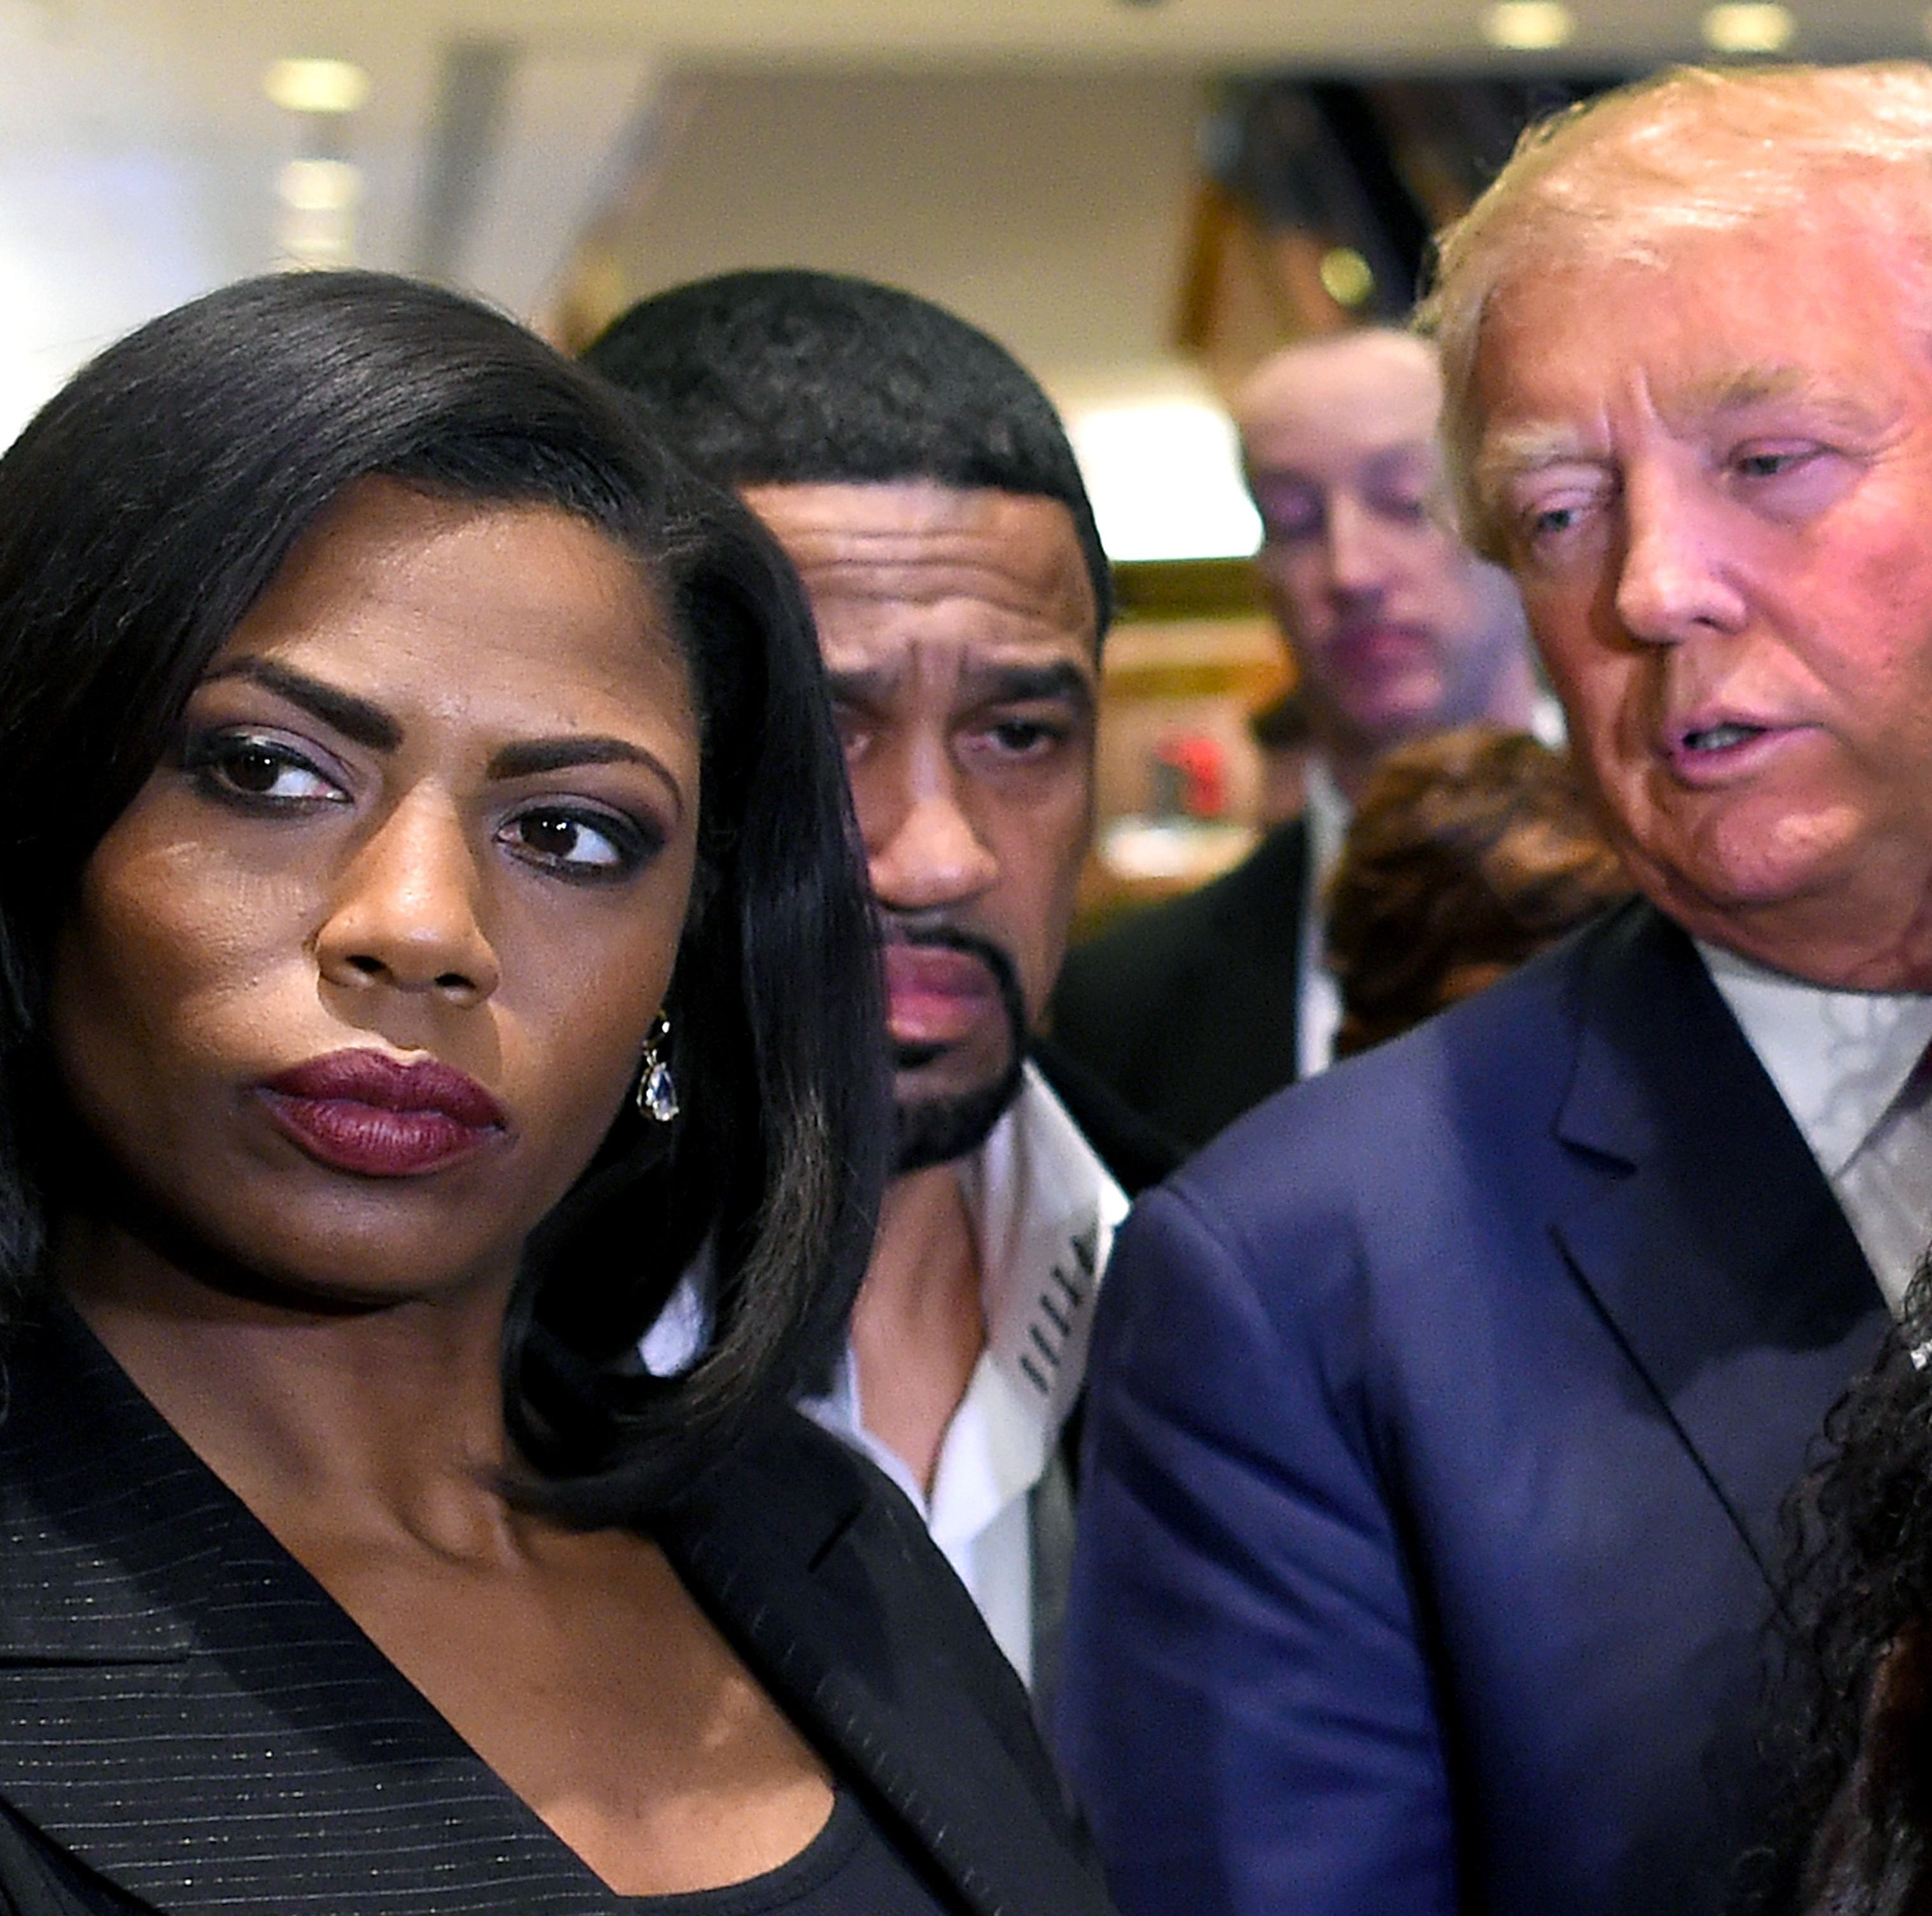 Trump and Omarosa deserve each other